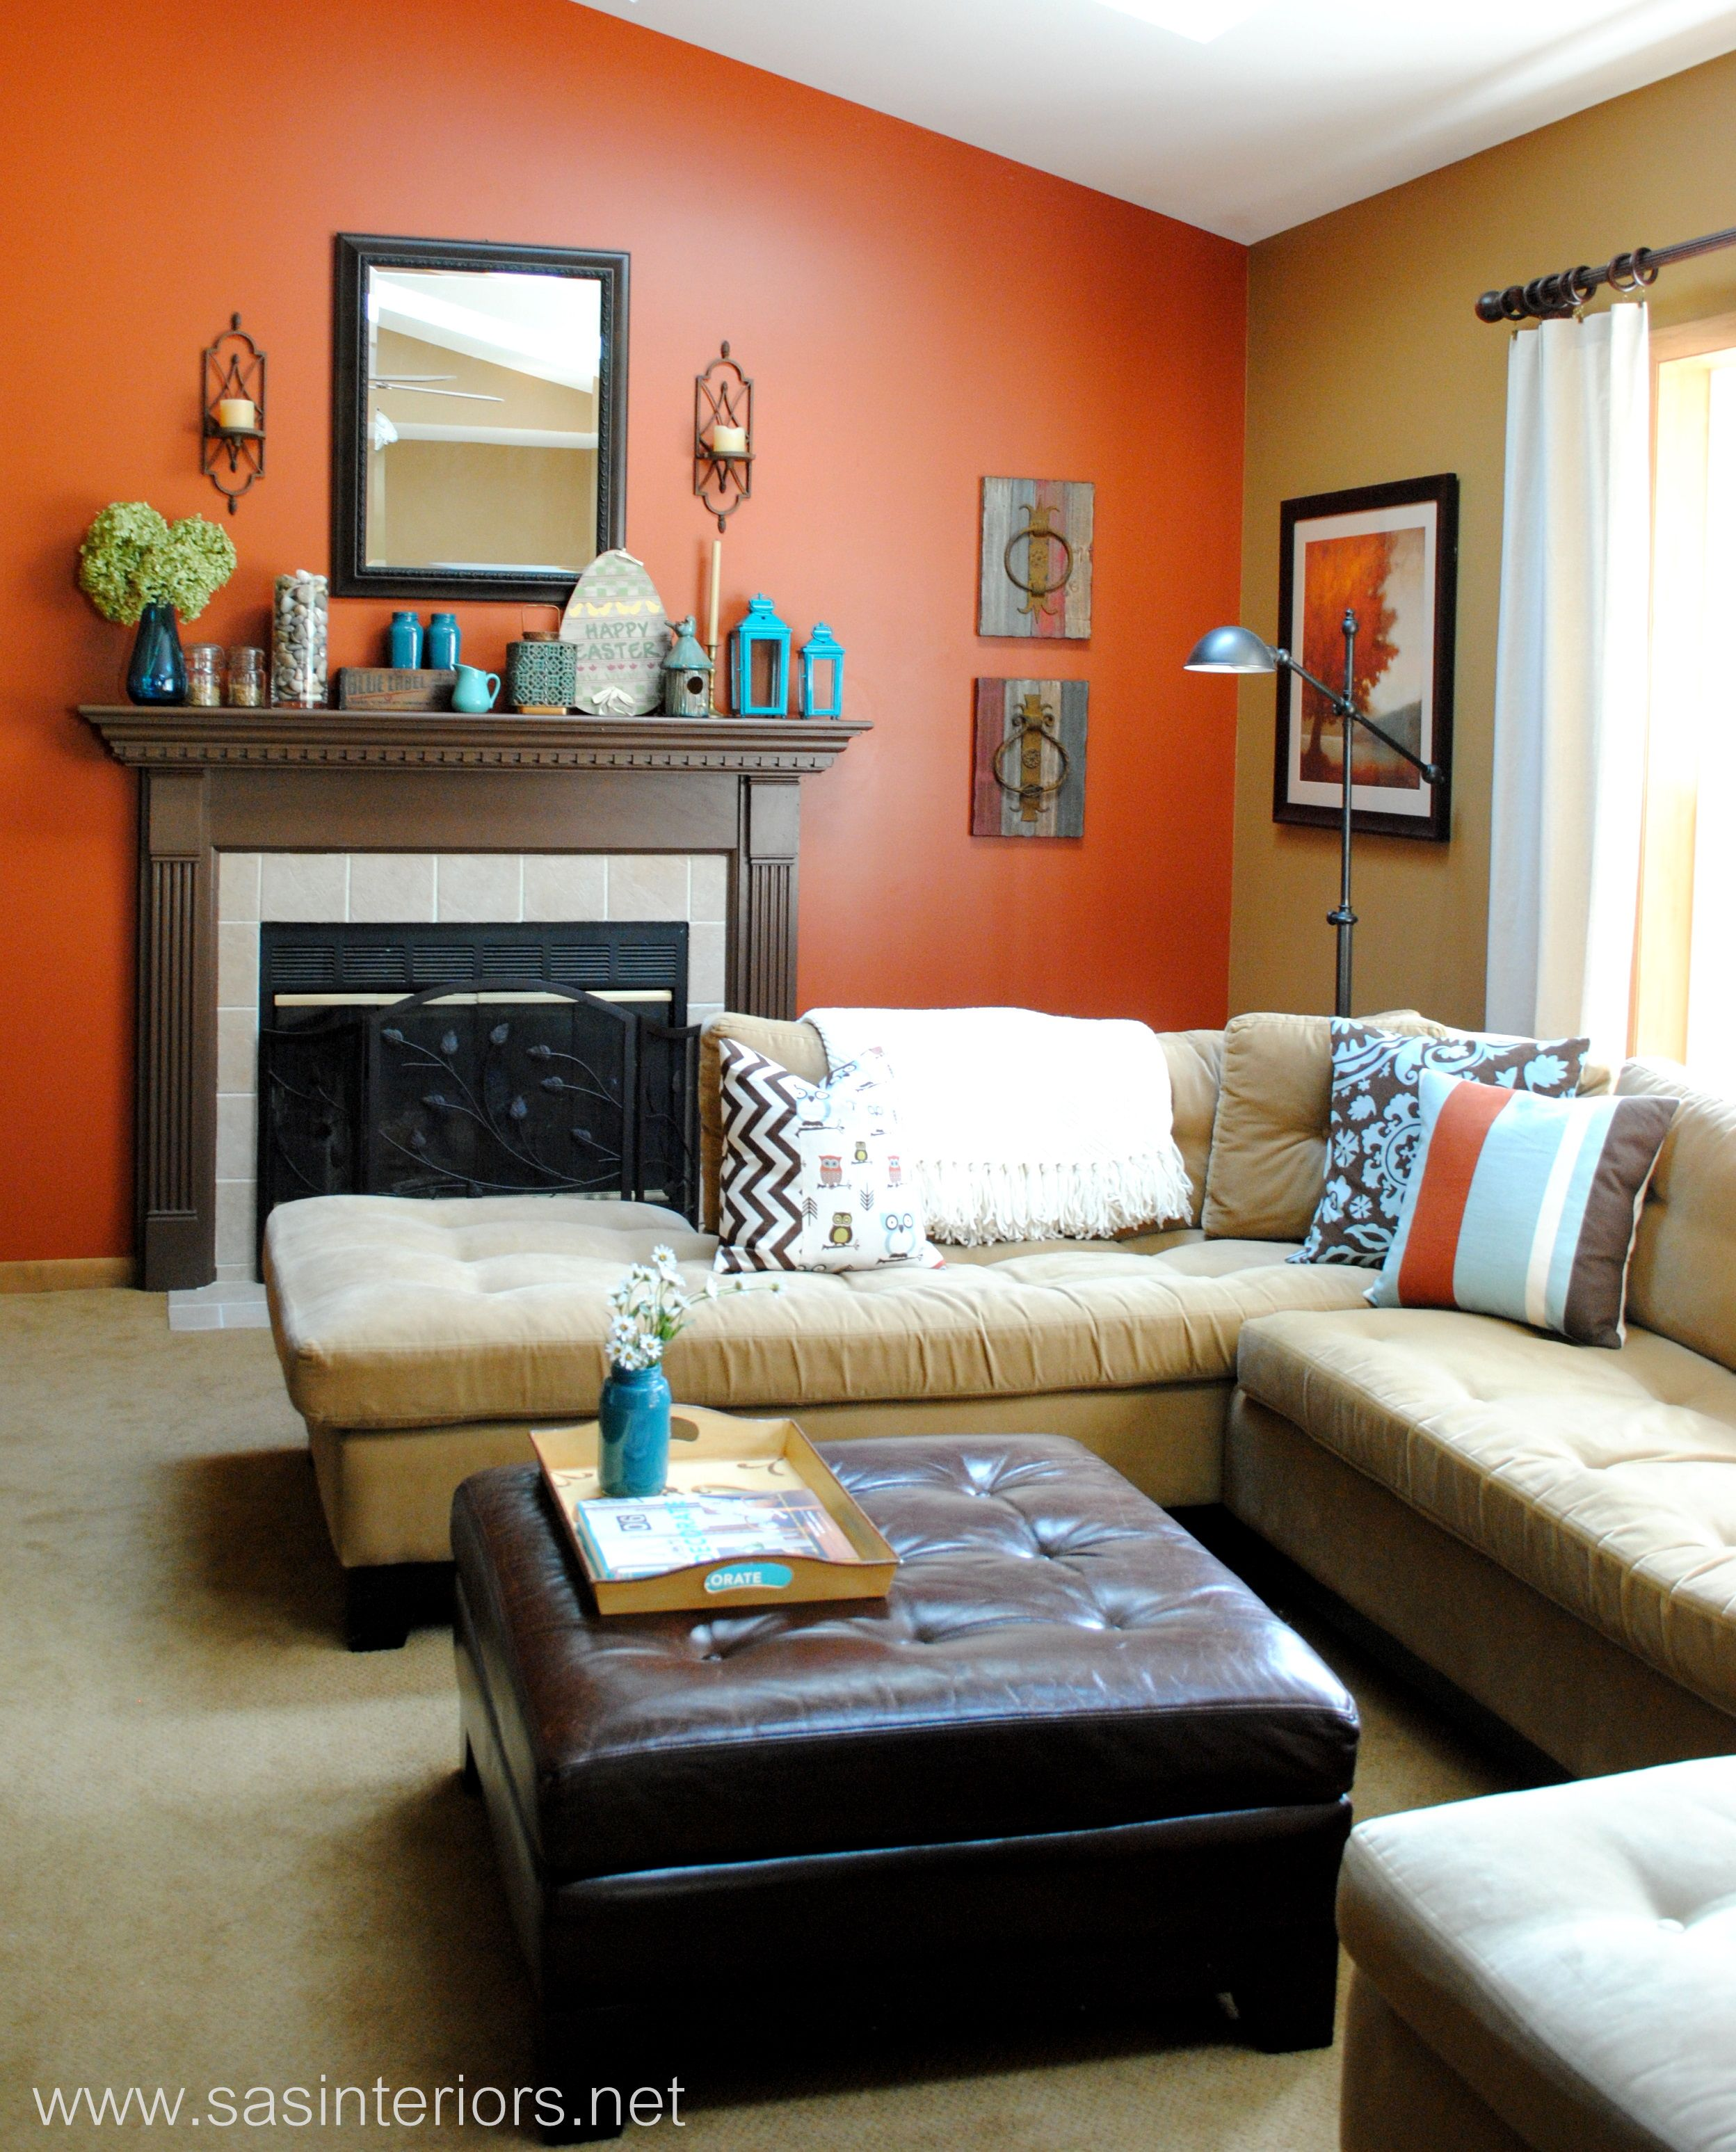 Burnt Orange Paint Burnt Orange Focal Walli Am Going To Do This On My Wall With The